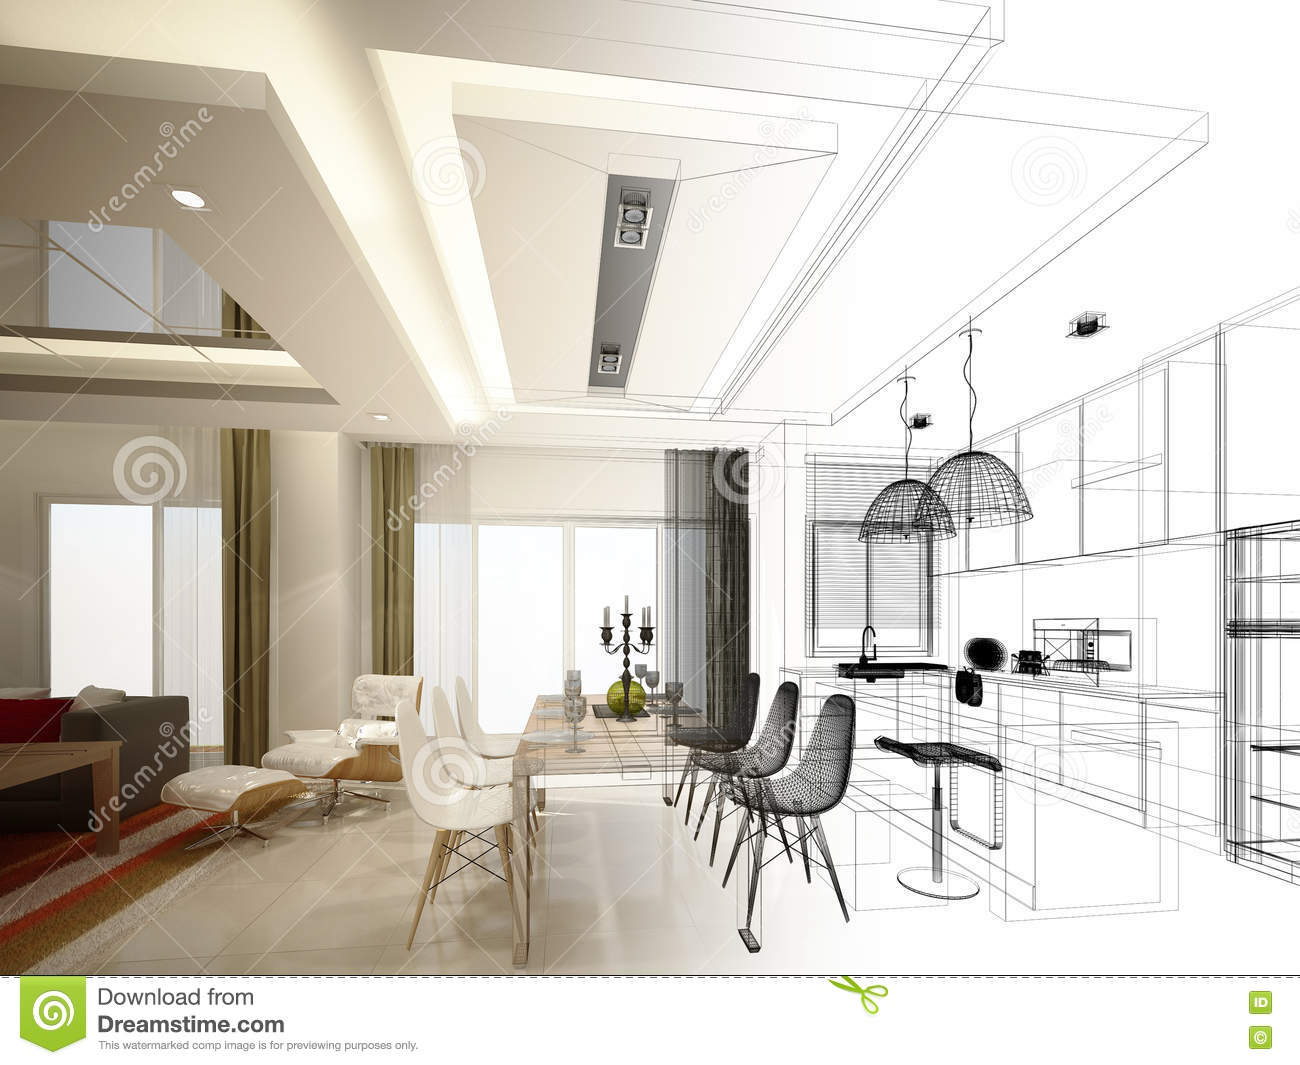 Abstract sketch design of interior dining and kitchen room for Interior design of kitchen room